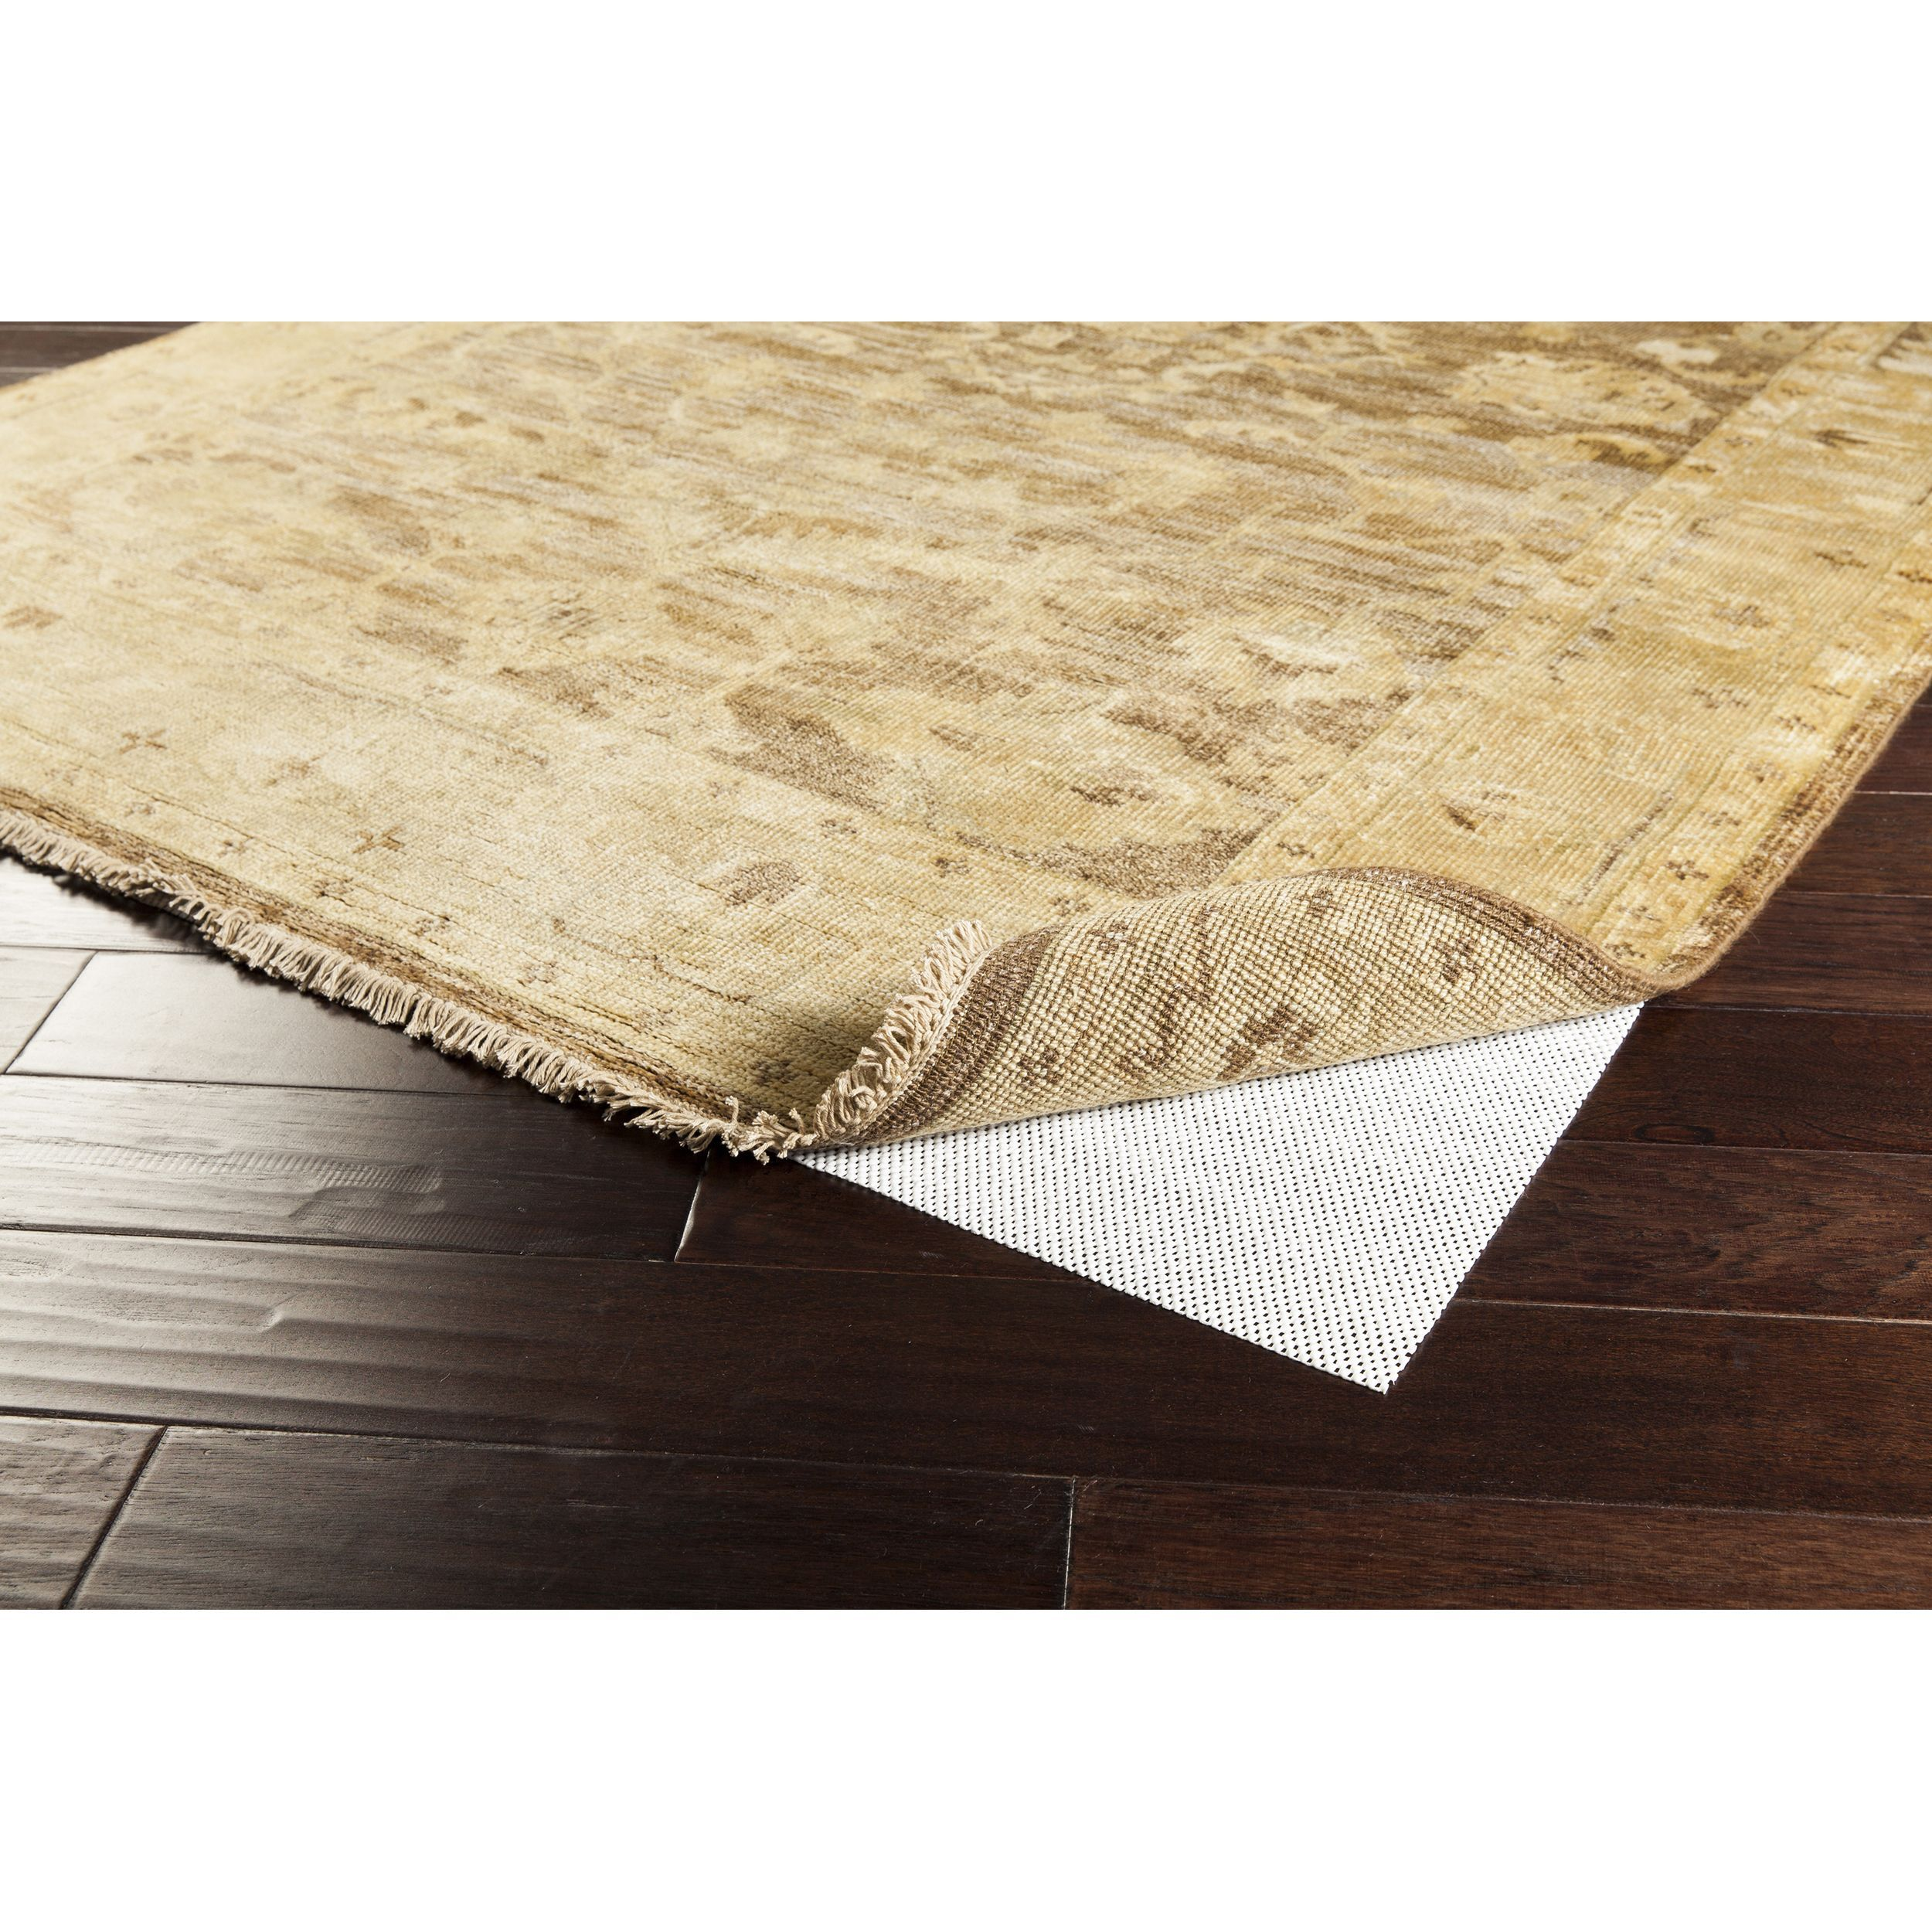 Ultra Support Lock Grip Reversible Hard Surface Non-Slip Rug Pad-(5'x8') (Madrid-58), Size 5' x 8' (PVC)